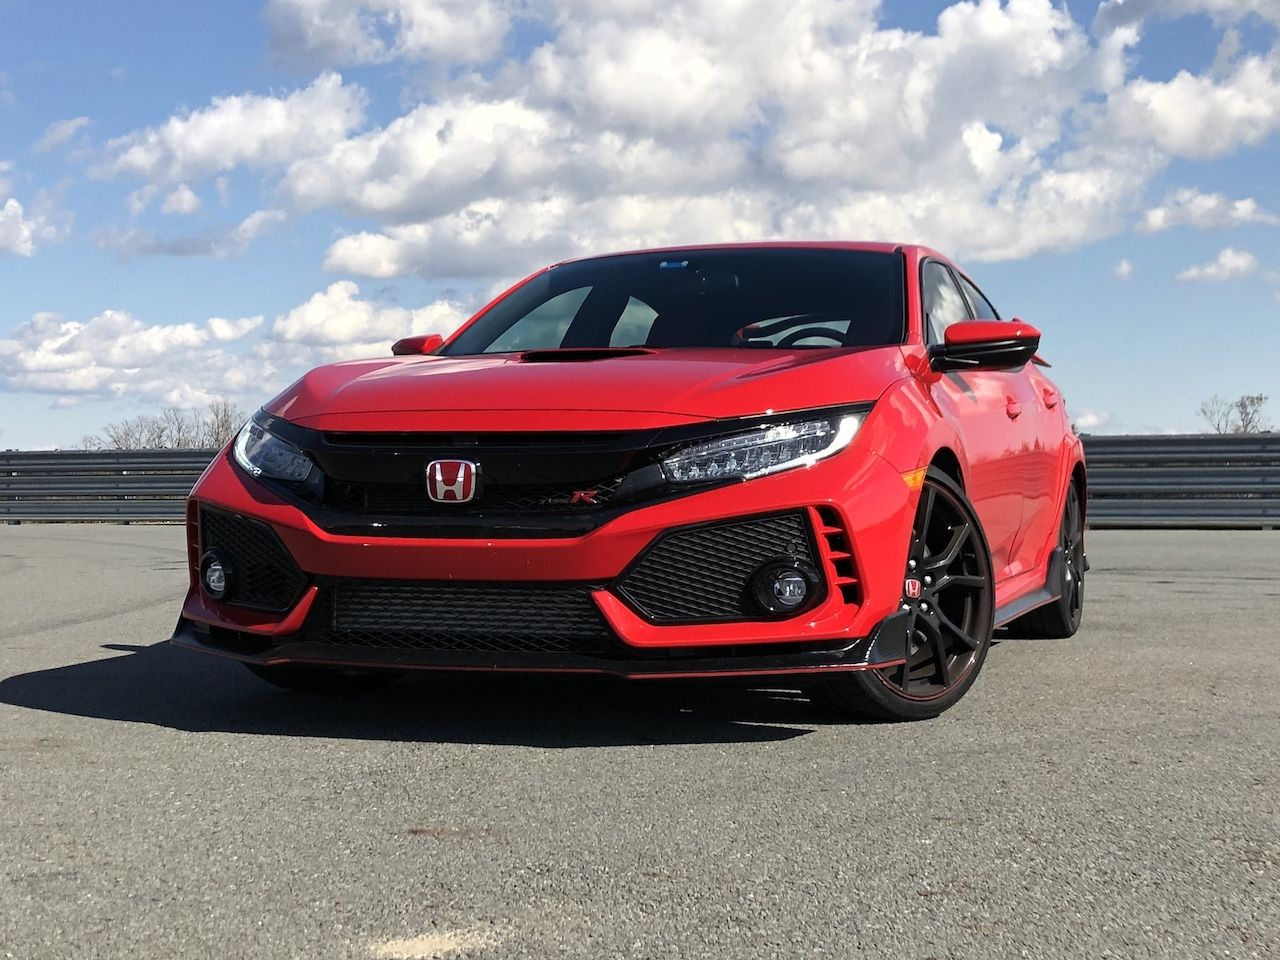 2019 Honda Civic , 2019 Honda Civic Type R Arrives with